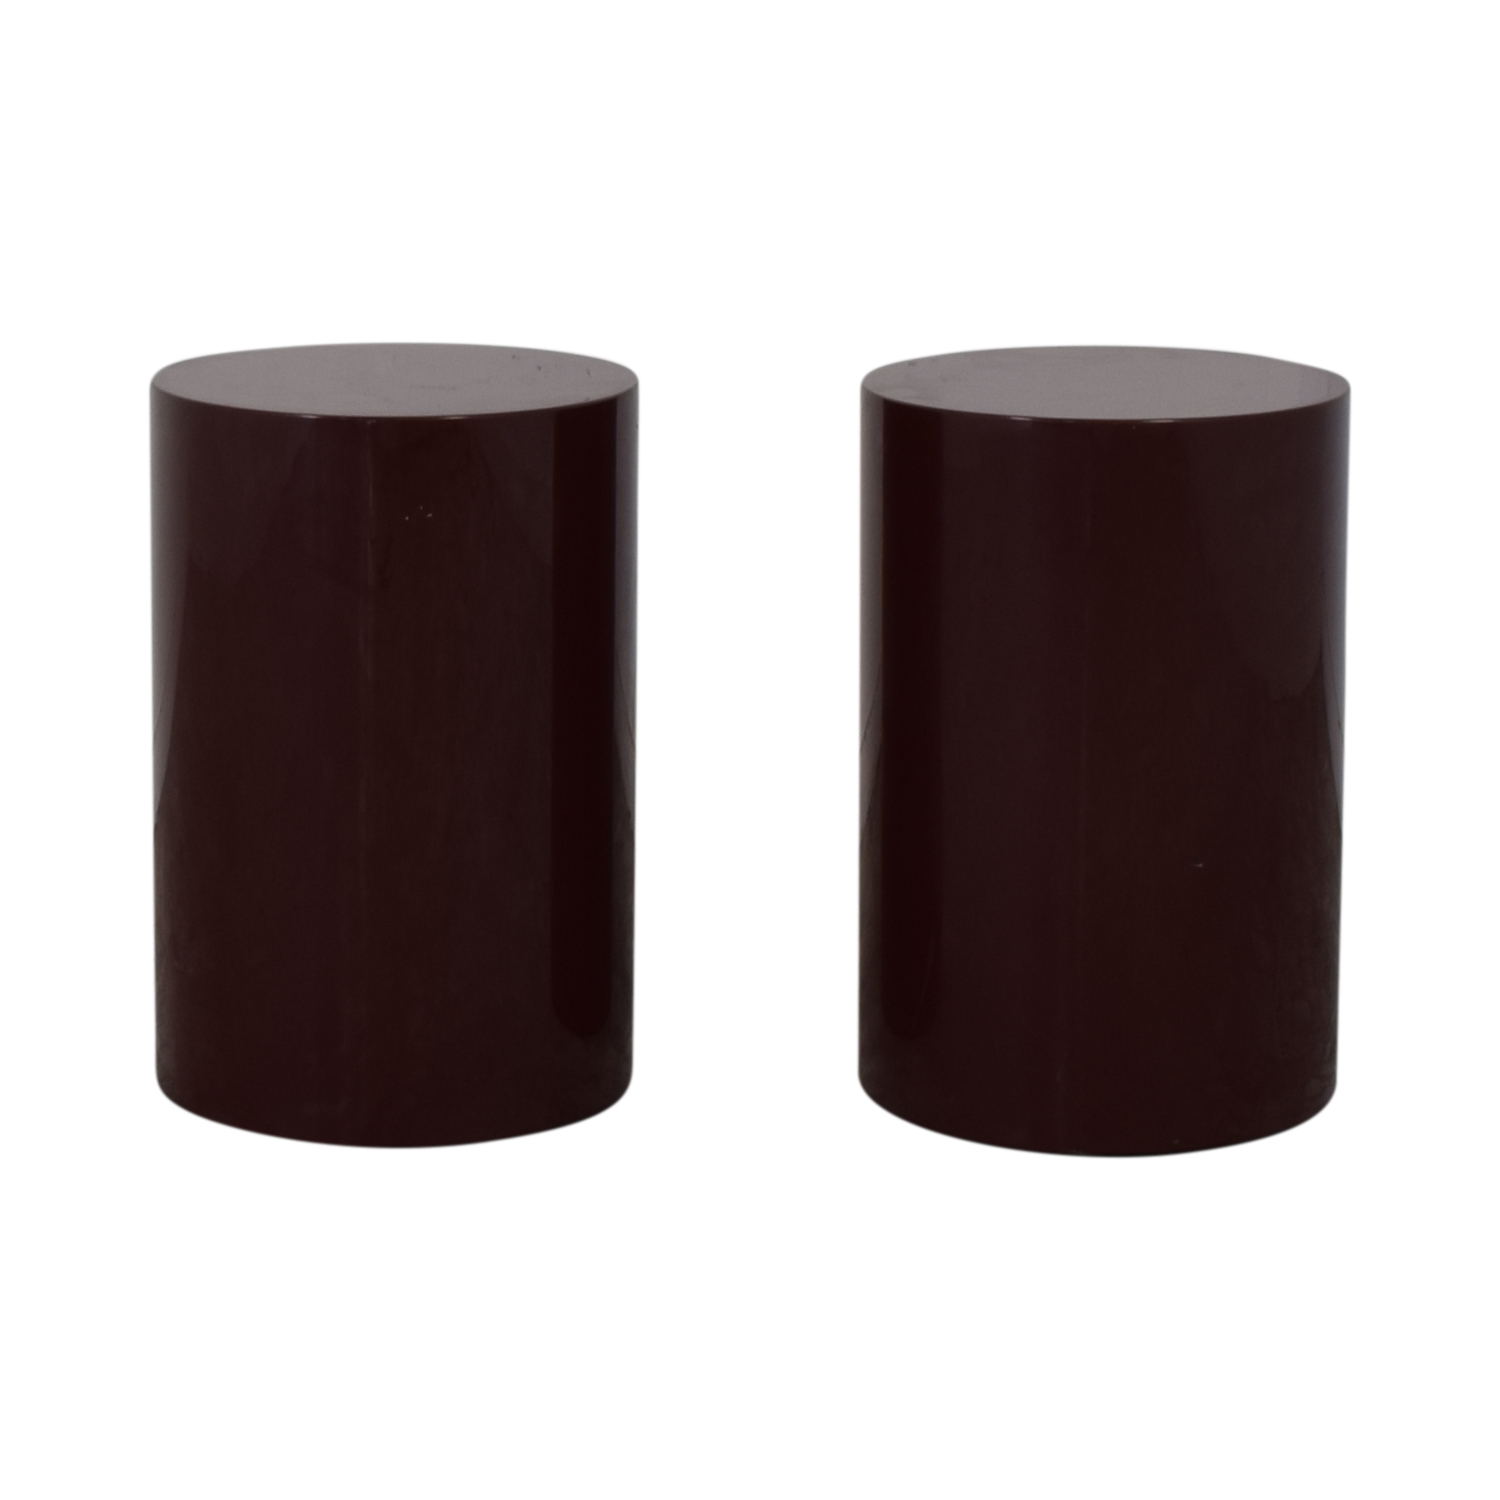 Intrex Round End Tables brown